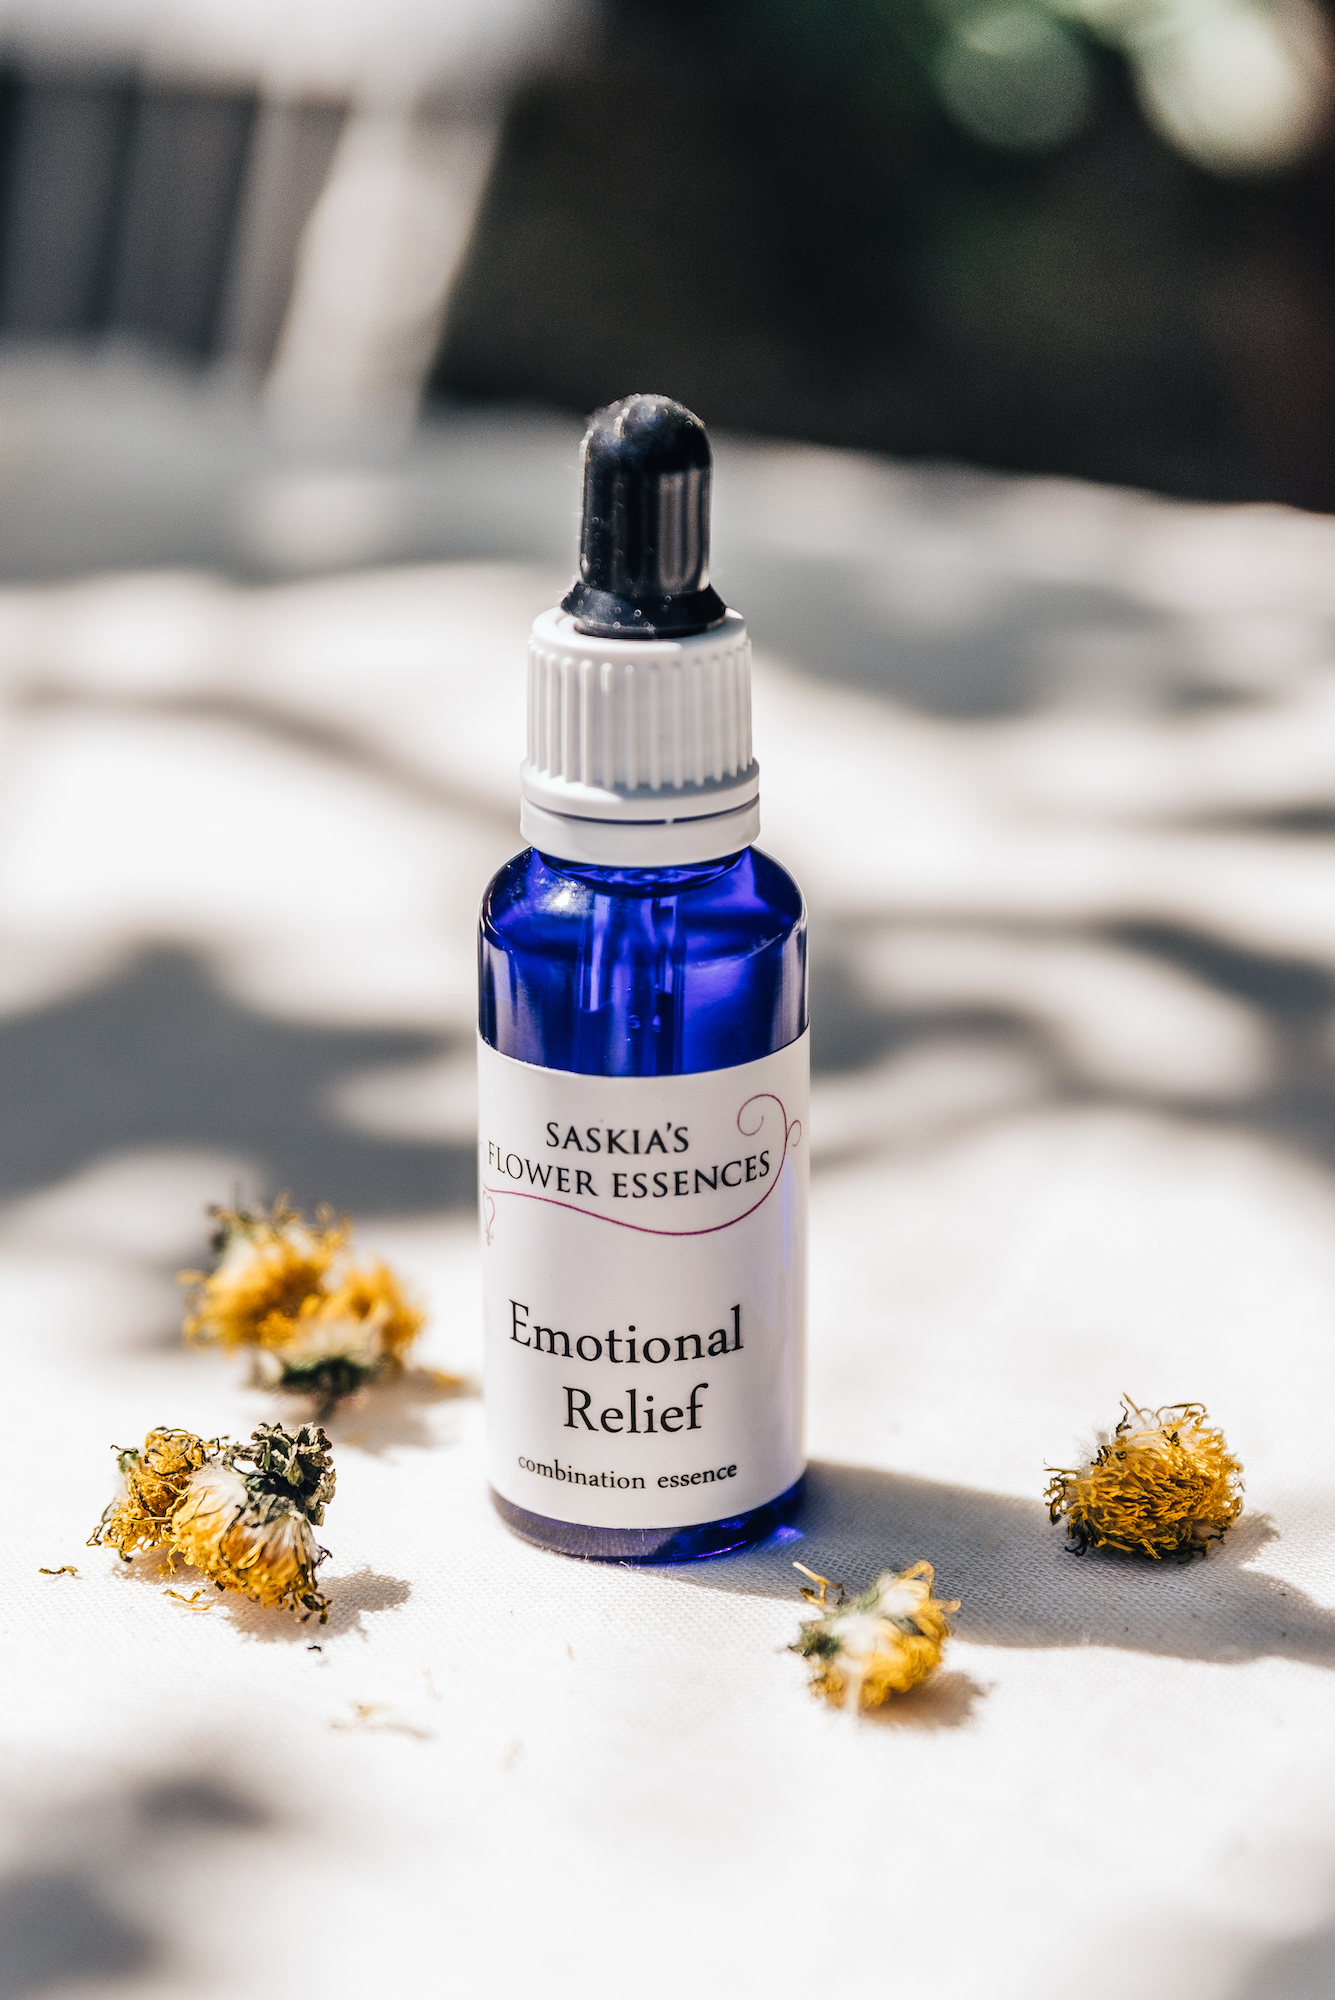 Saskia's Flower Essences are the go-to products ultimate well-being